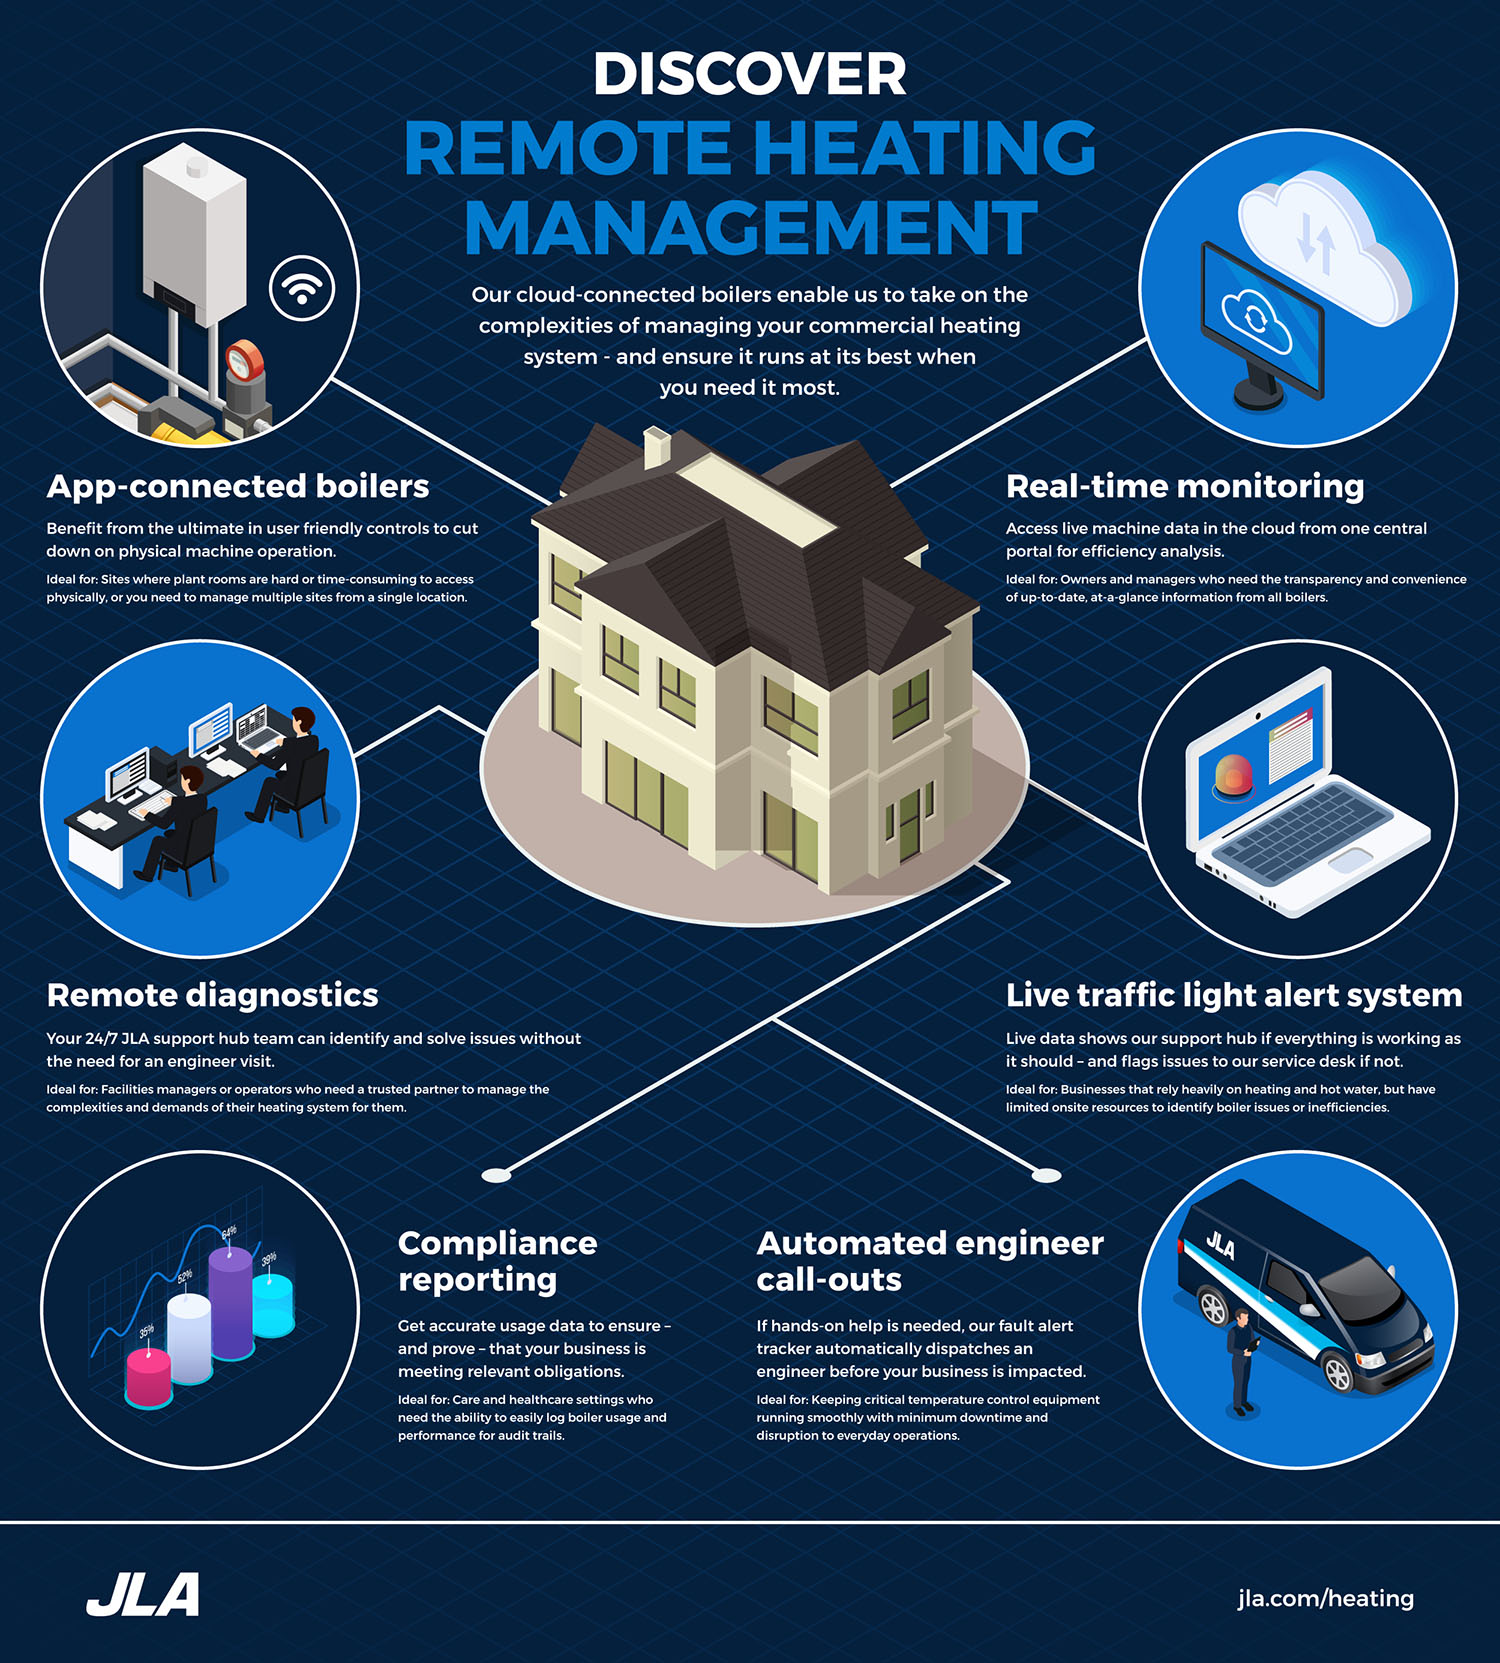 Discover remote heating management